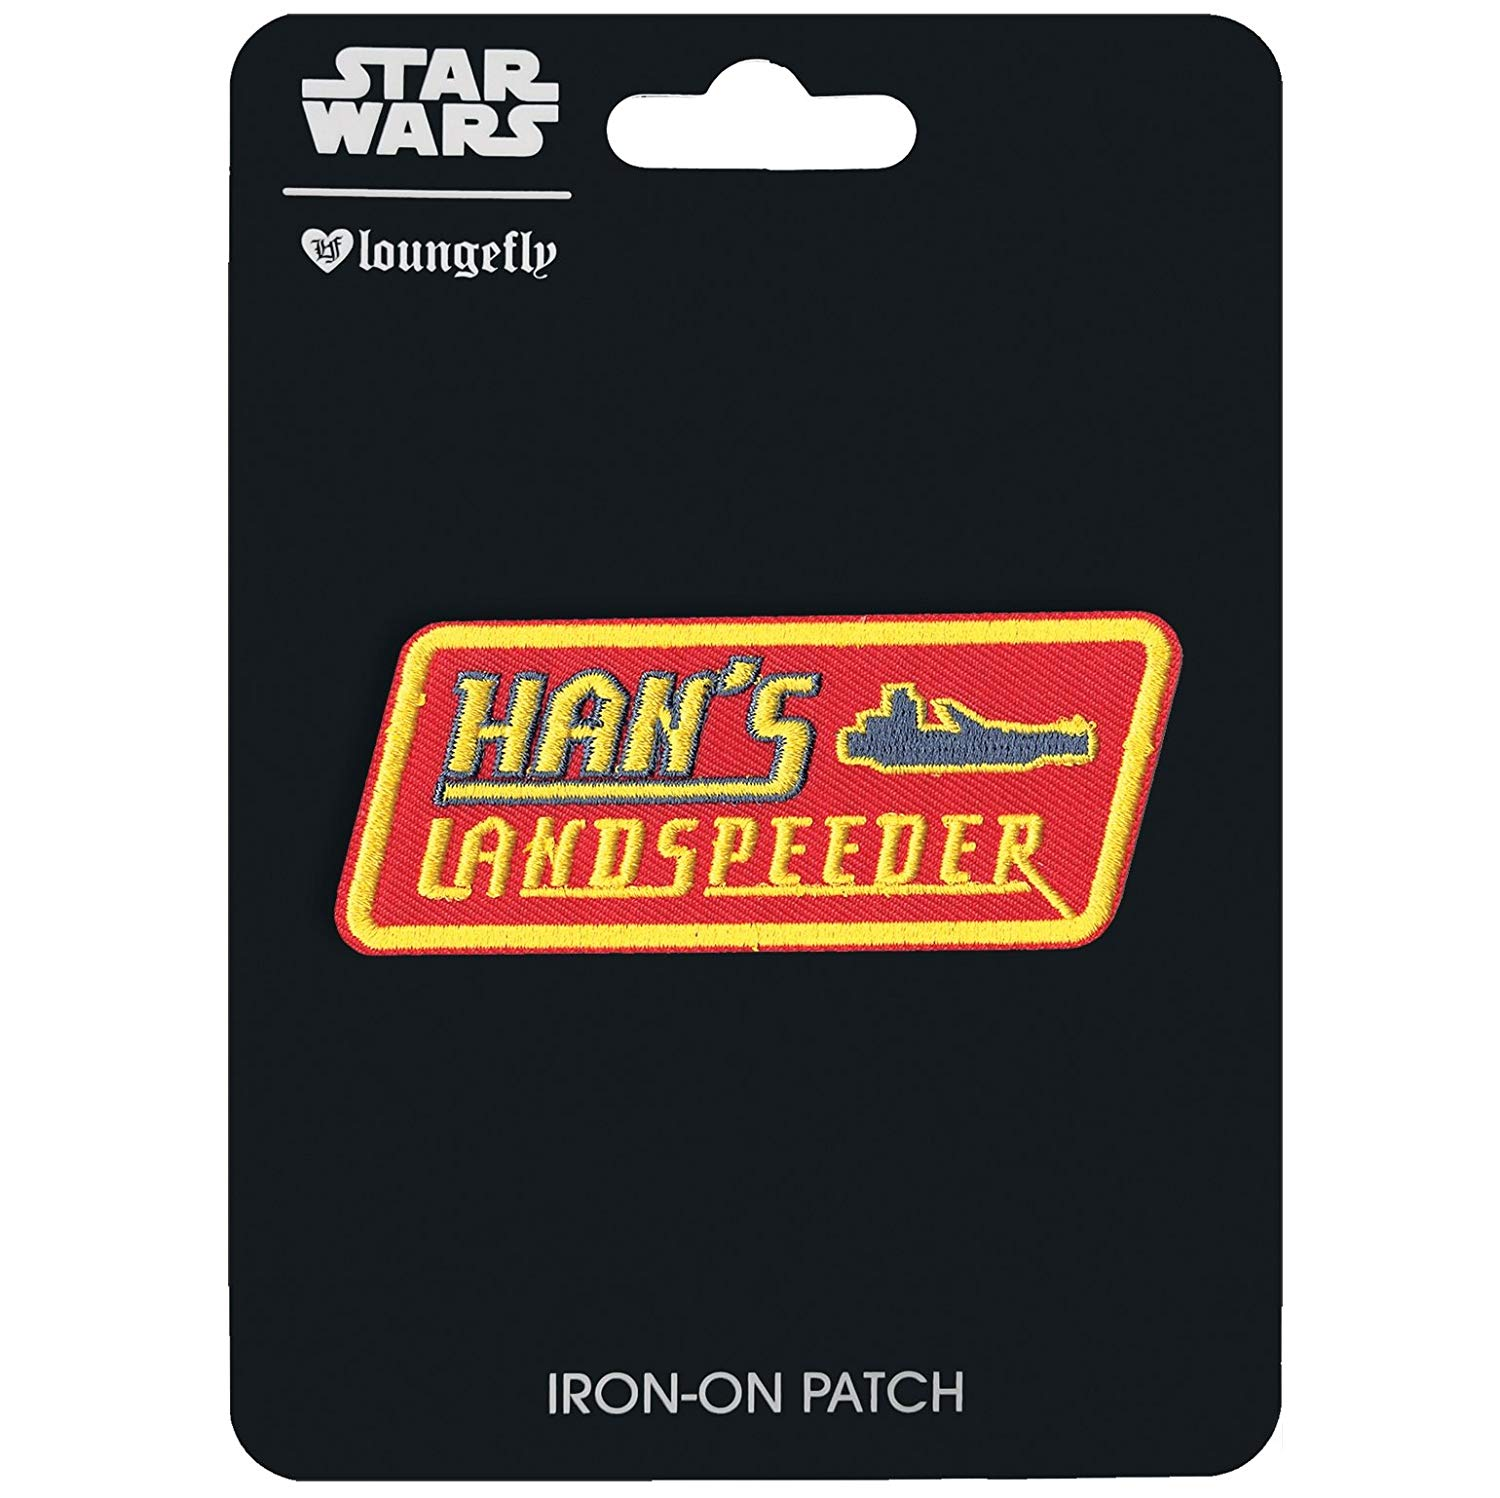 Solo: ASWS Han's Landspeeder Embroidered Iron-On Patch 1